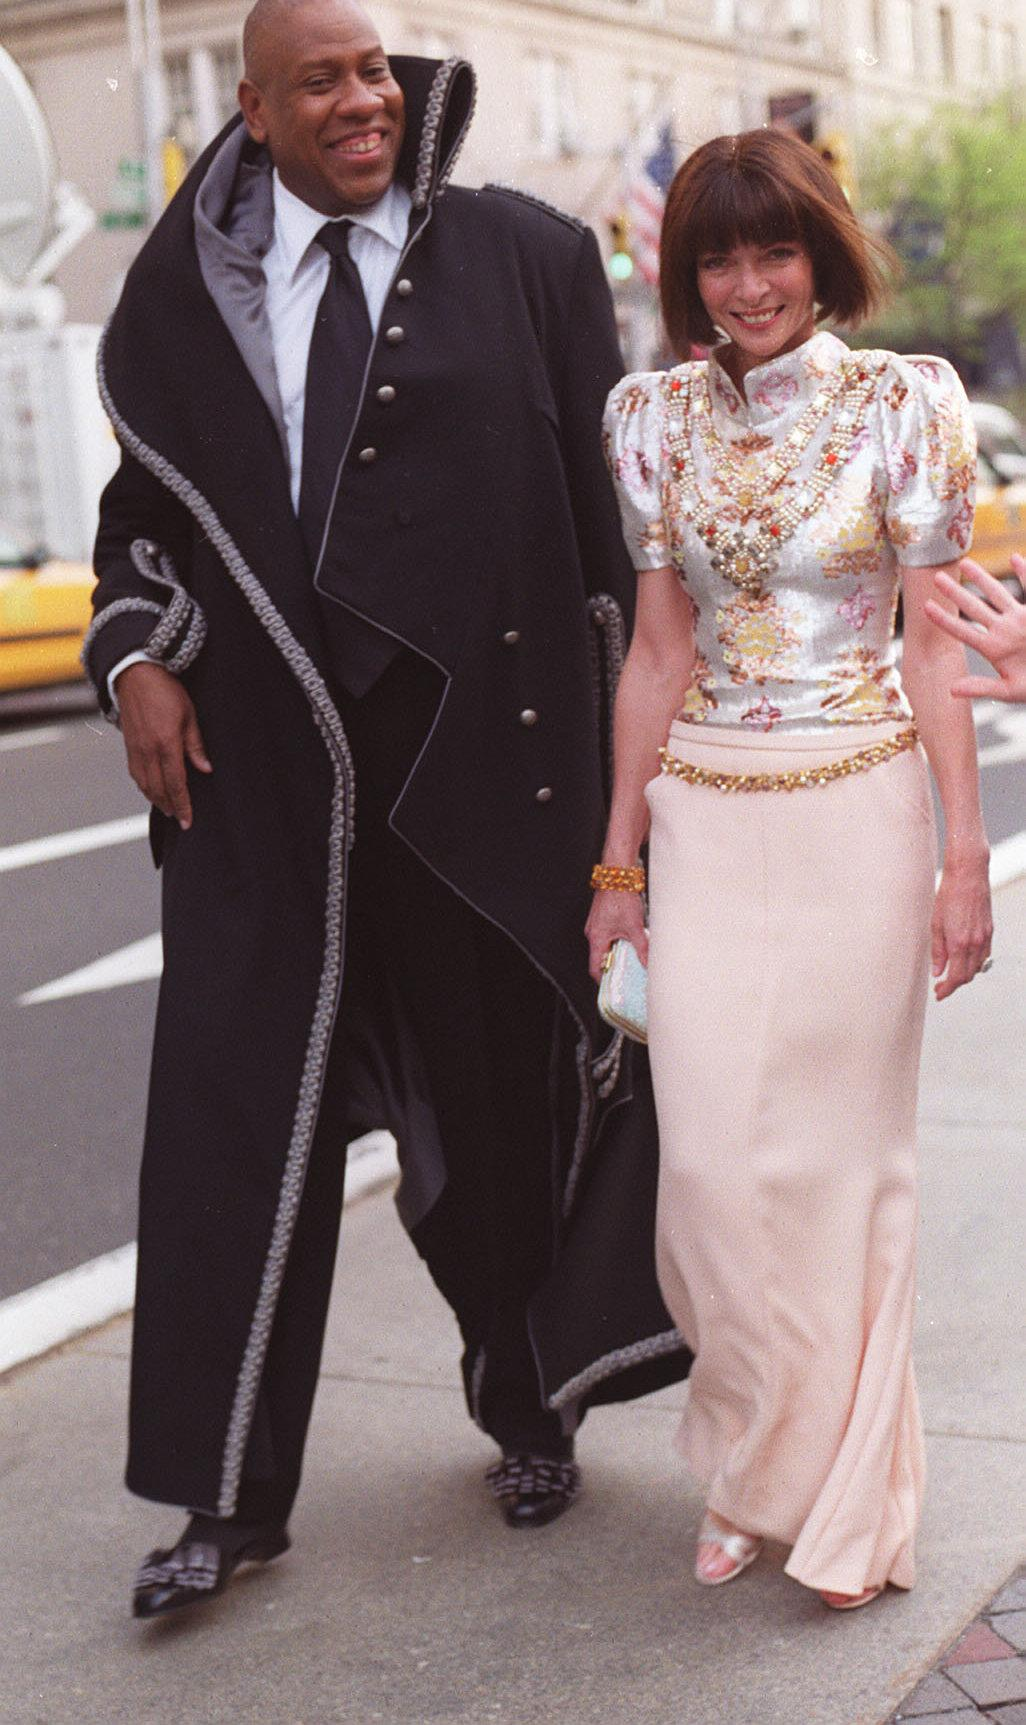 André Leon Talley og Anna Wintour. Foto: Bill Cunningham/New York Times